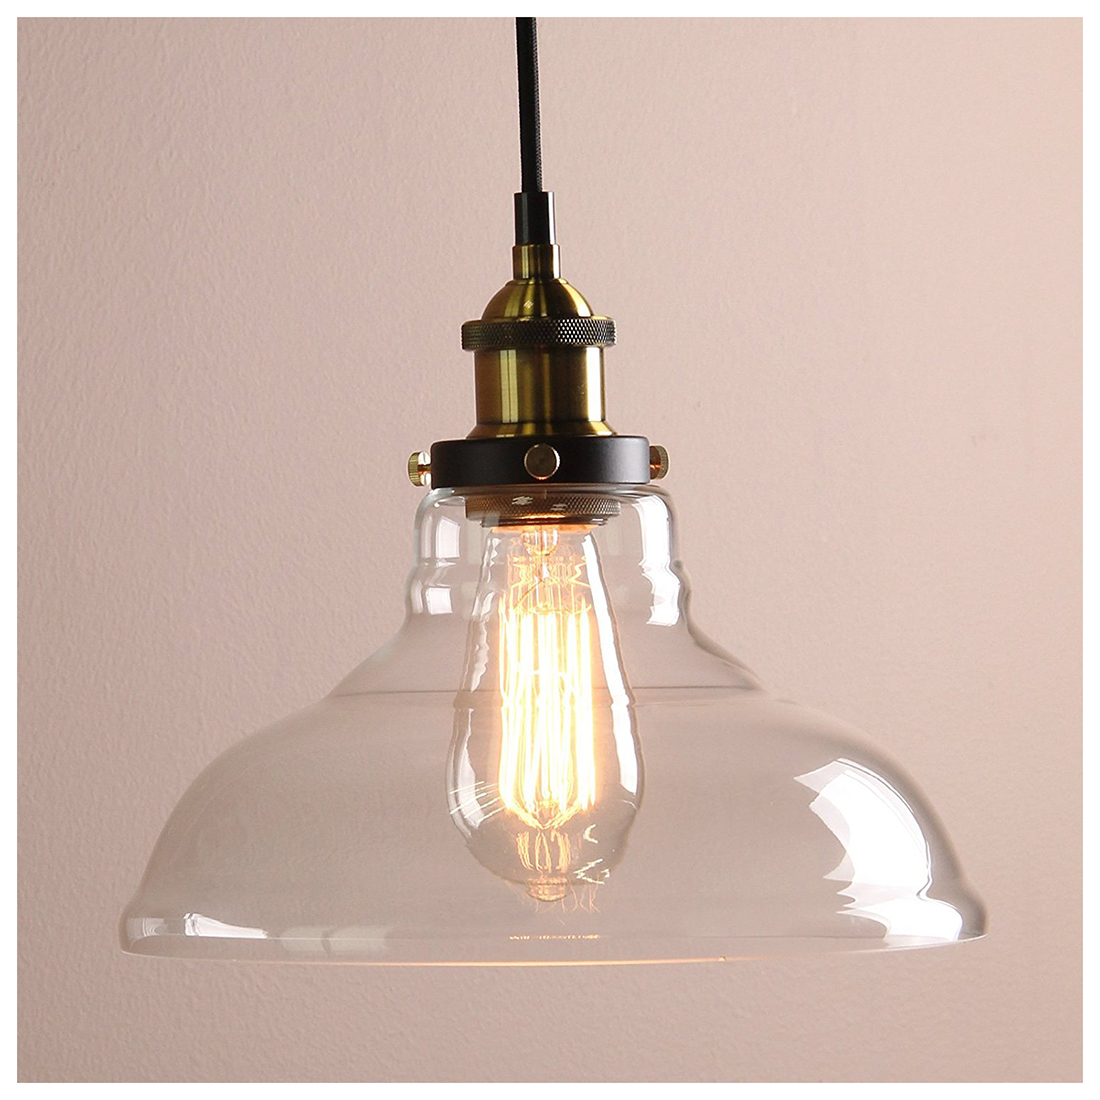 Modern Vintage Amber Industrial 1 Light Iron Body Glass Shade Loft Coffee Bar Kitchen cover Chandeliers Hanging Pendant Lamp L<br>